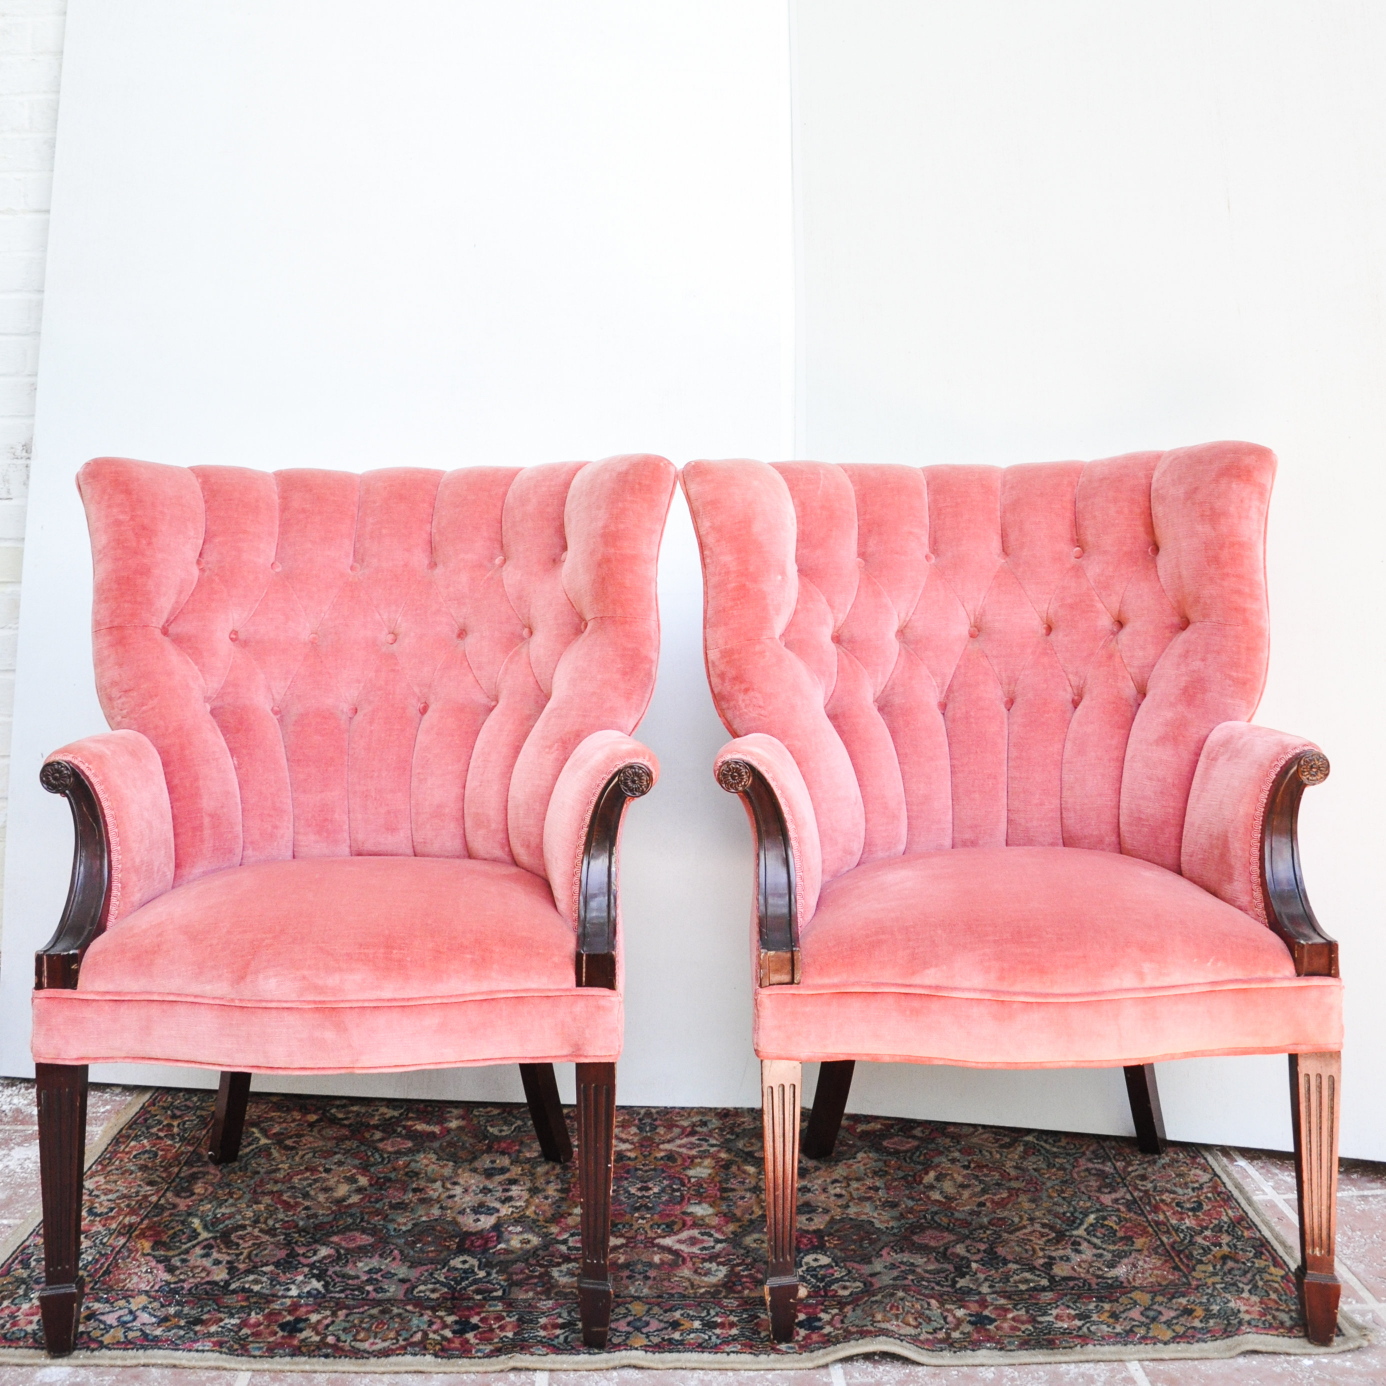 Our Thelma & Louise chairs are the perfect set of vintage pink velvet tufted back chairs to add a touch of color to any event (click photo for link).